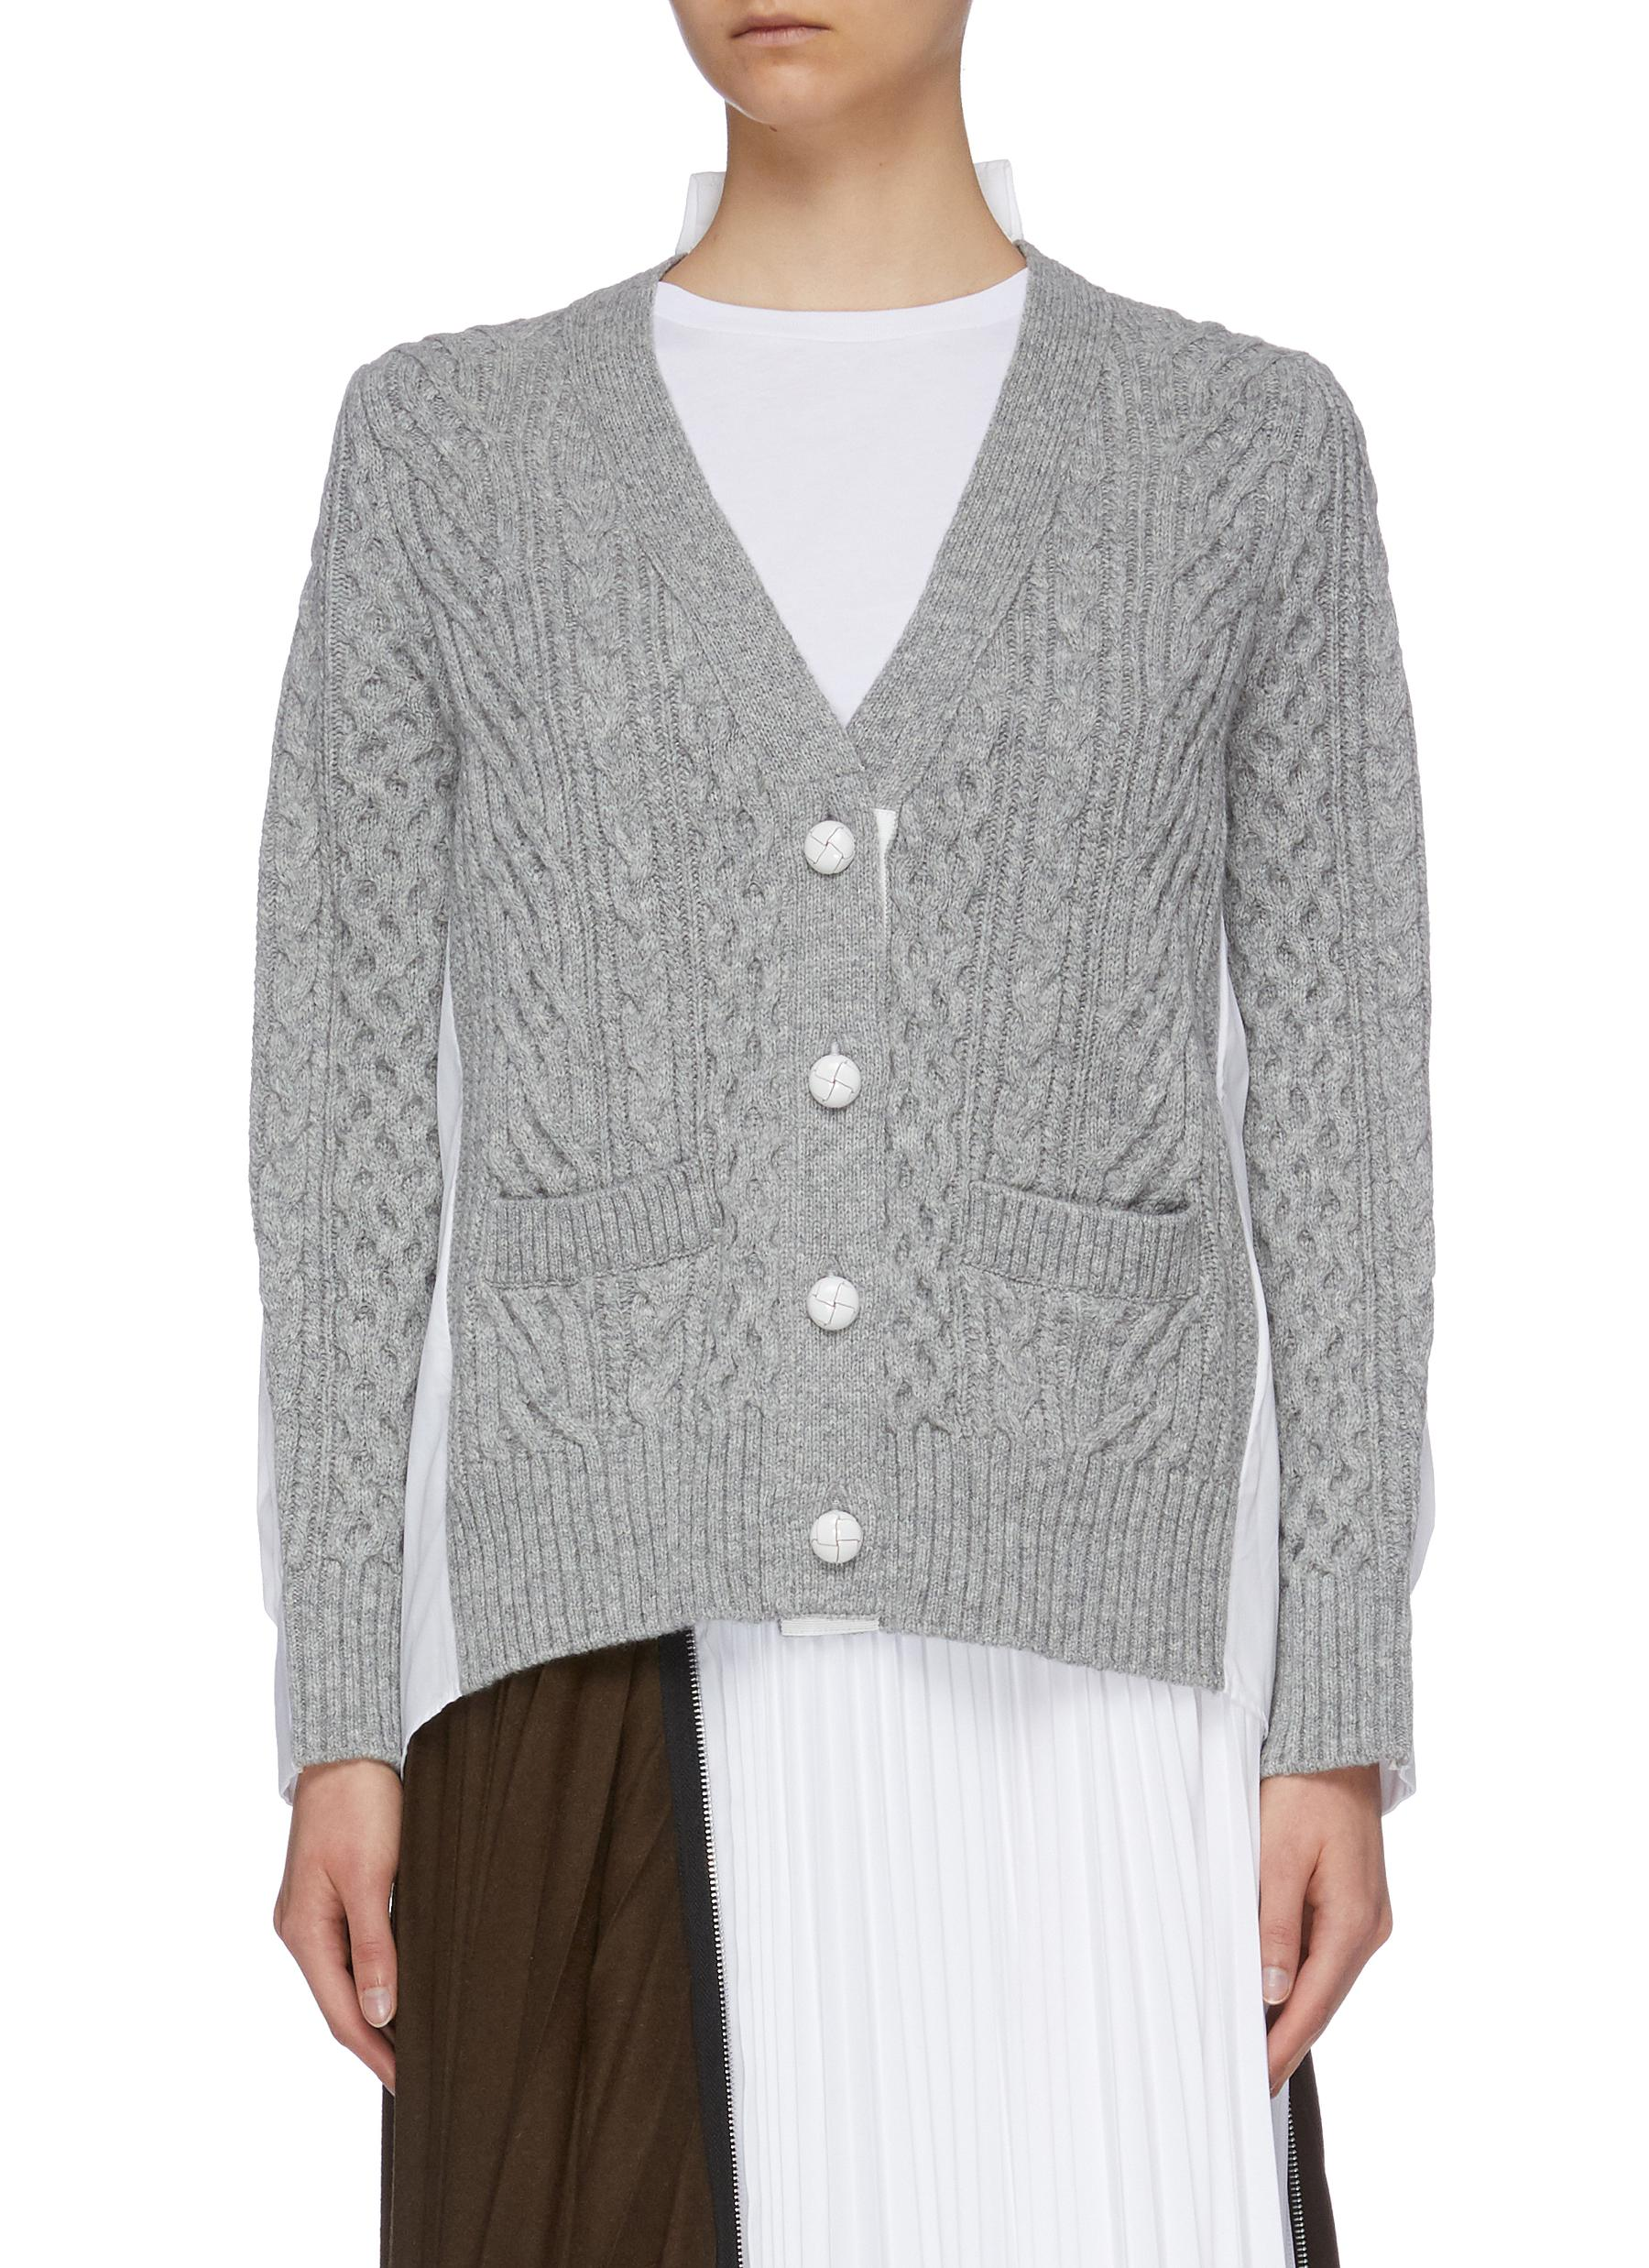 Shirt back wool cable knit cardigan by Sacai